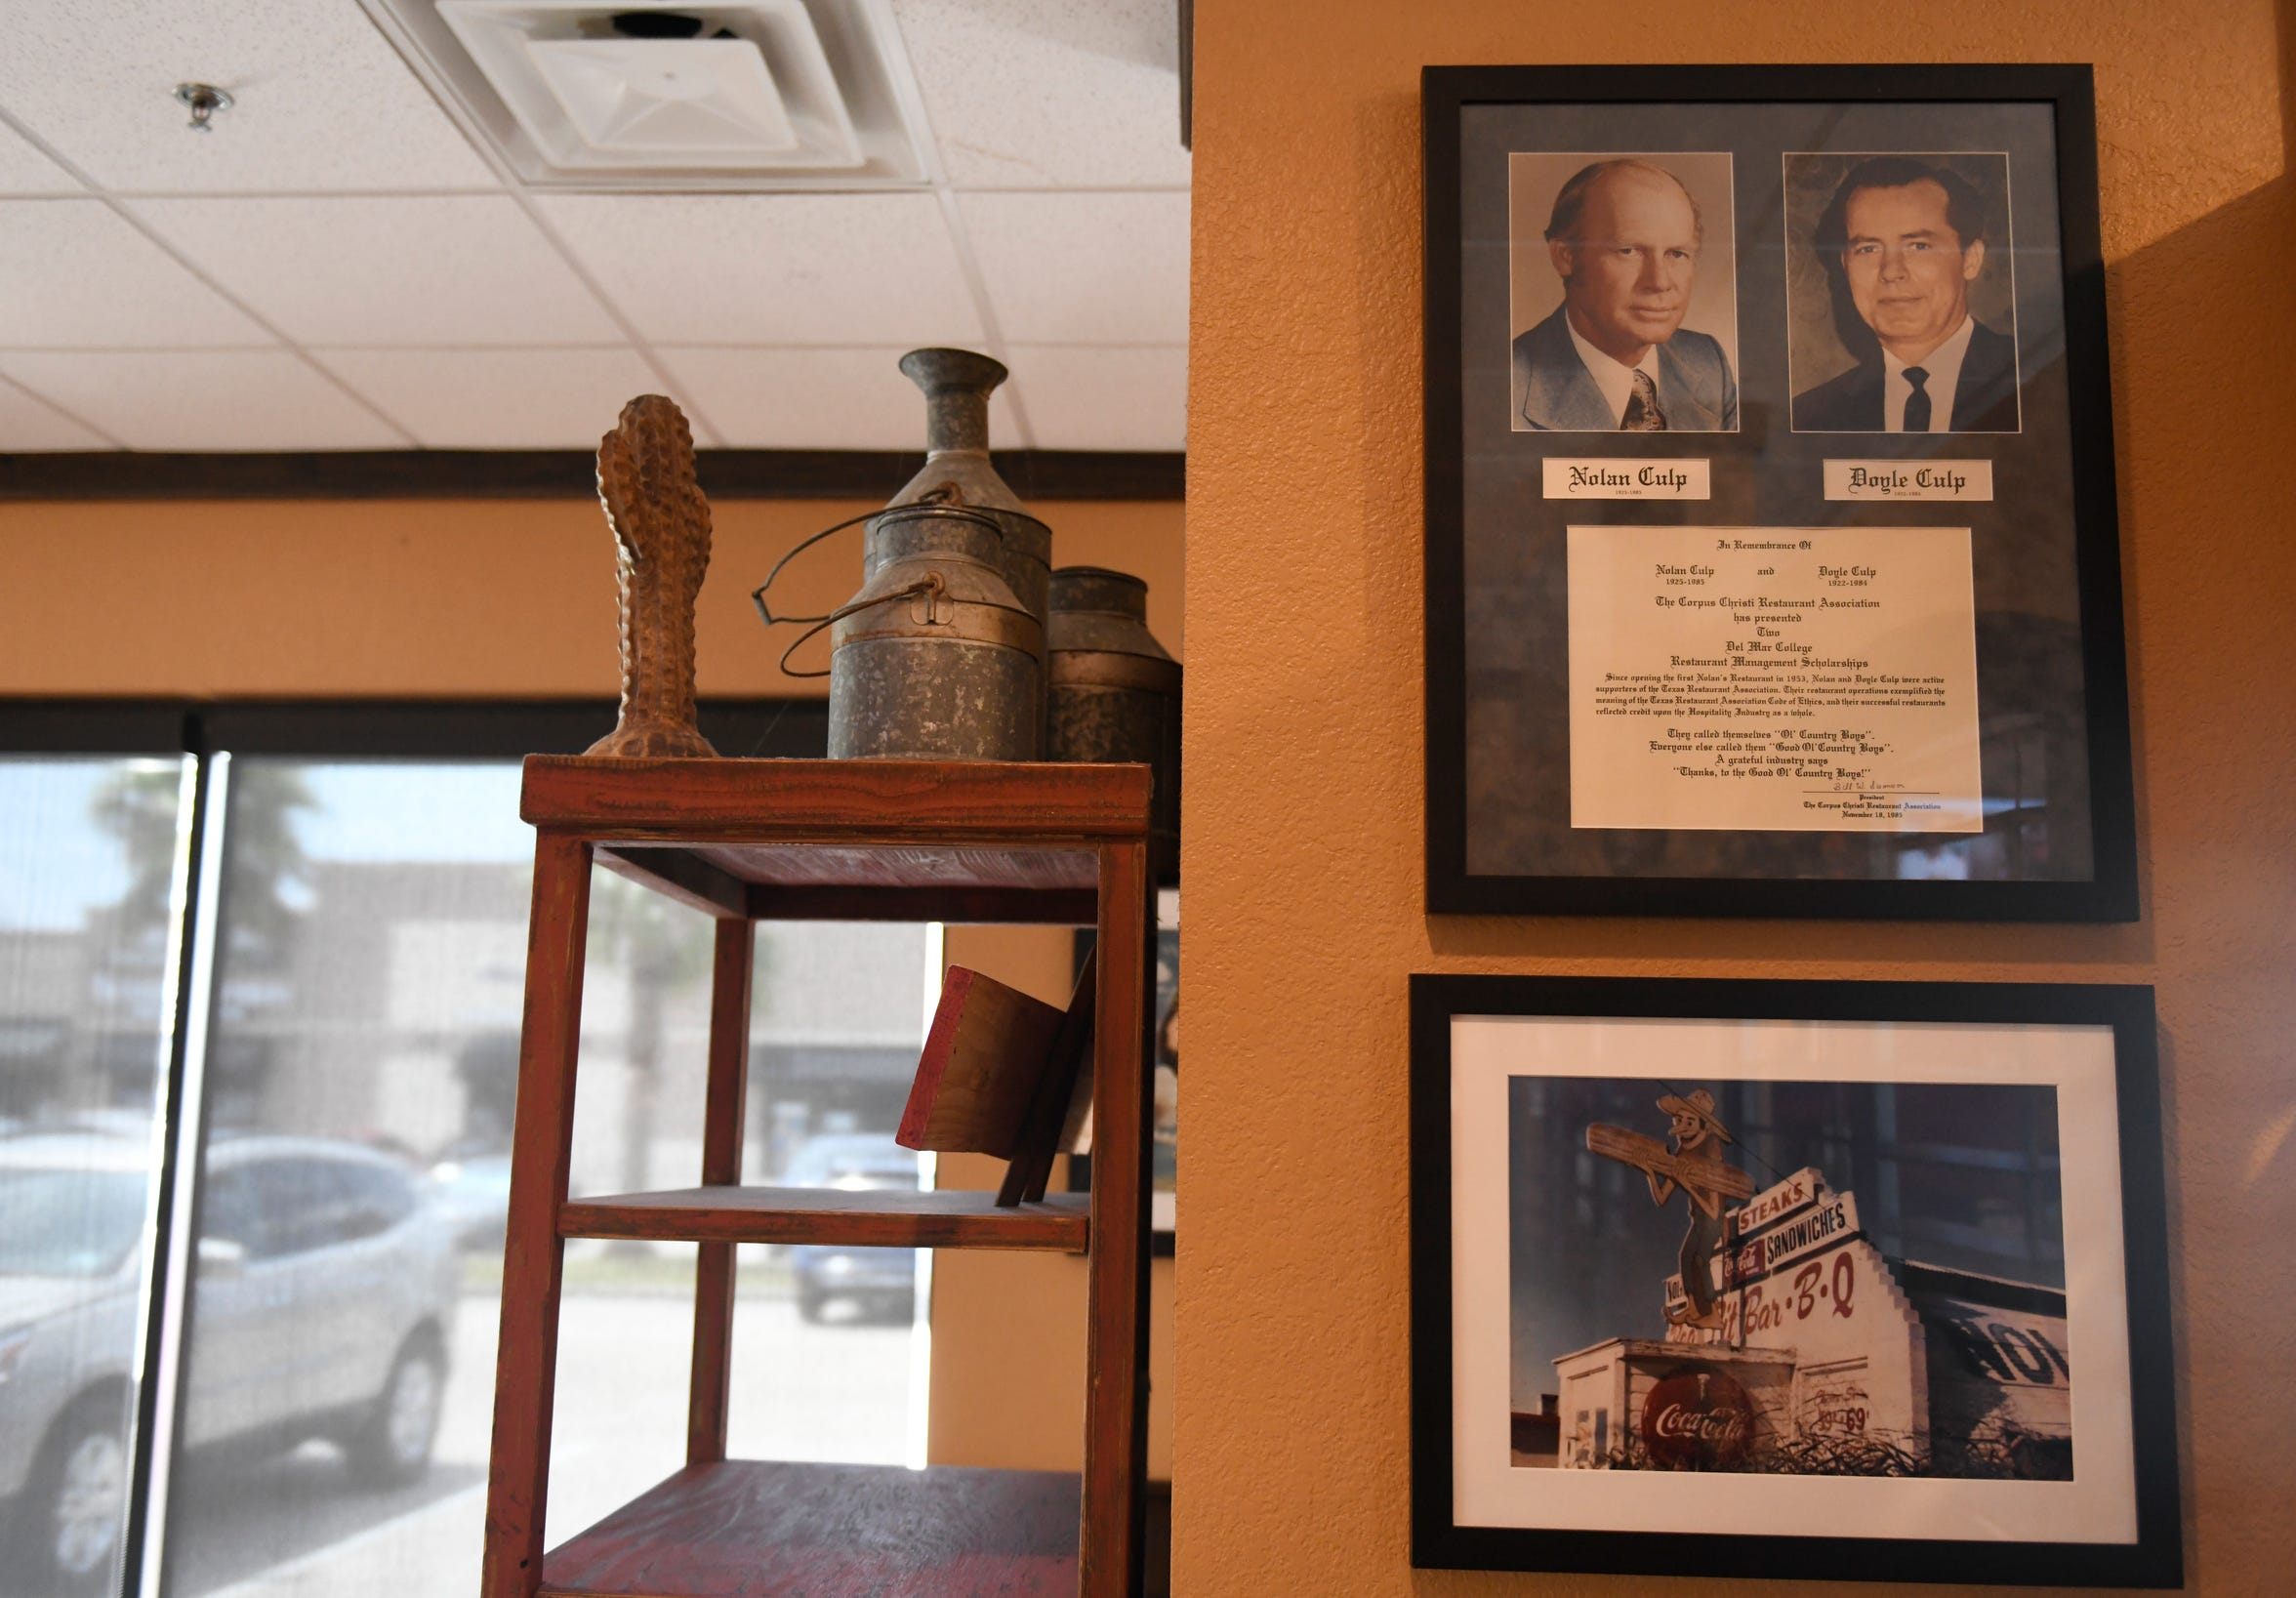 Nolan's was founded by brothers Nolan and Doyle Culp in 1953 and has had locations all over the Corpus Christi area. The location at Staples and Yorktown Blvd., seen on Thursday, Aug. 15, 209, has photos of the founders and it's original location on Ayers Street on the wall.